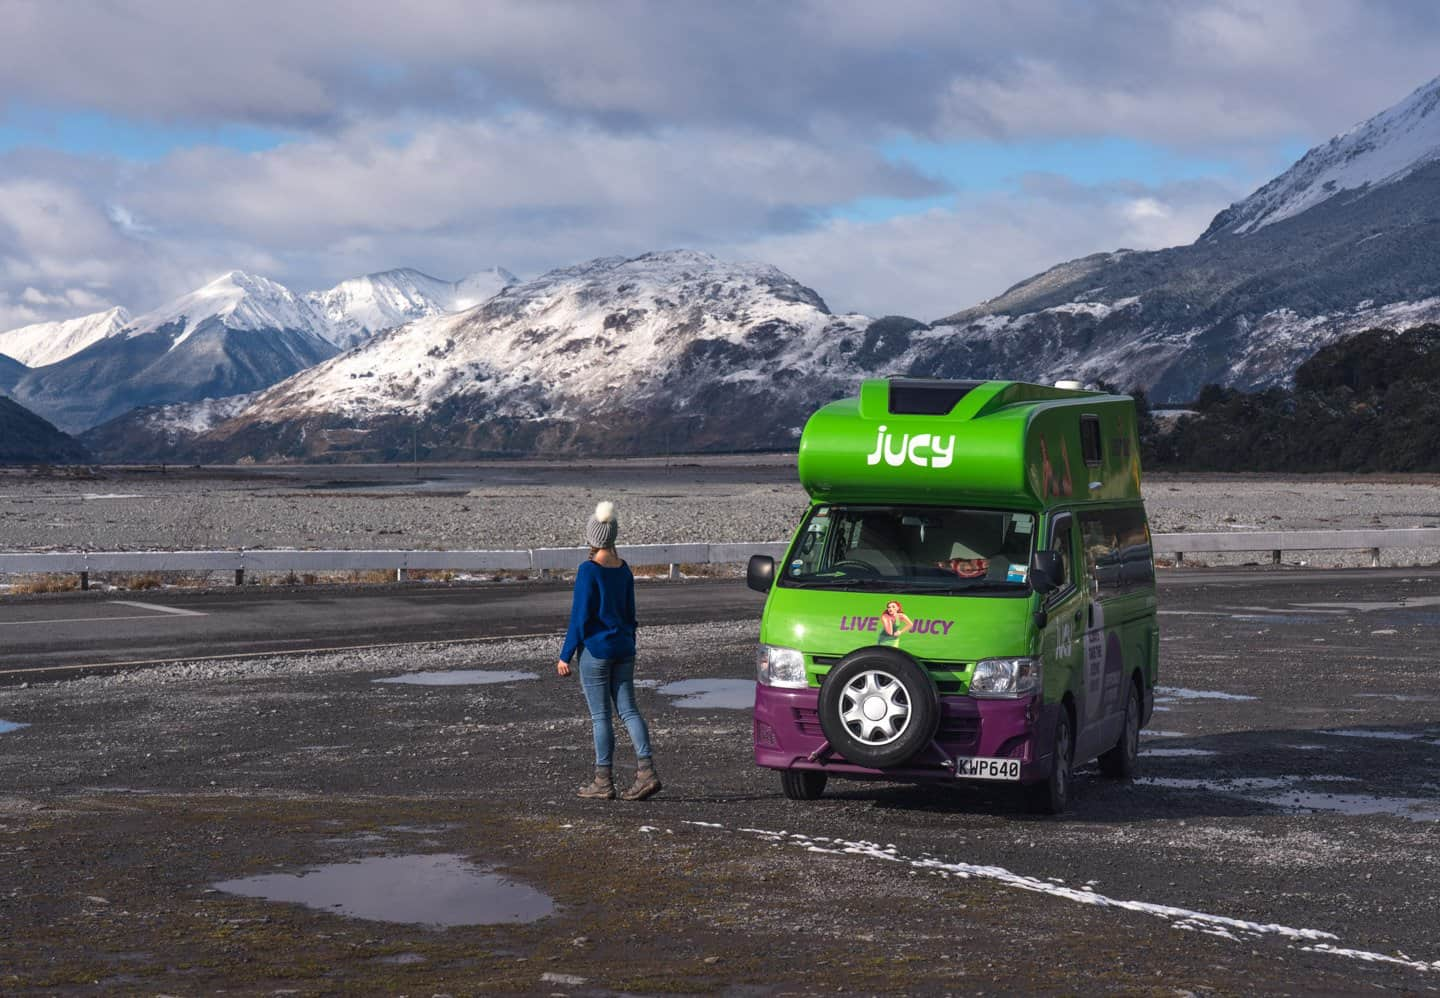 Be sure to get your visa or waiver approved BEFORE planning your campervan adventure.